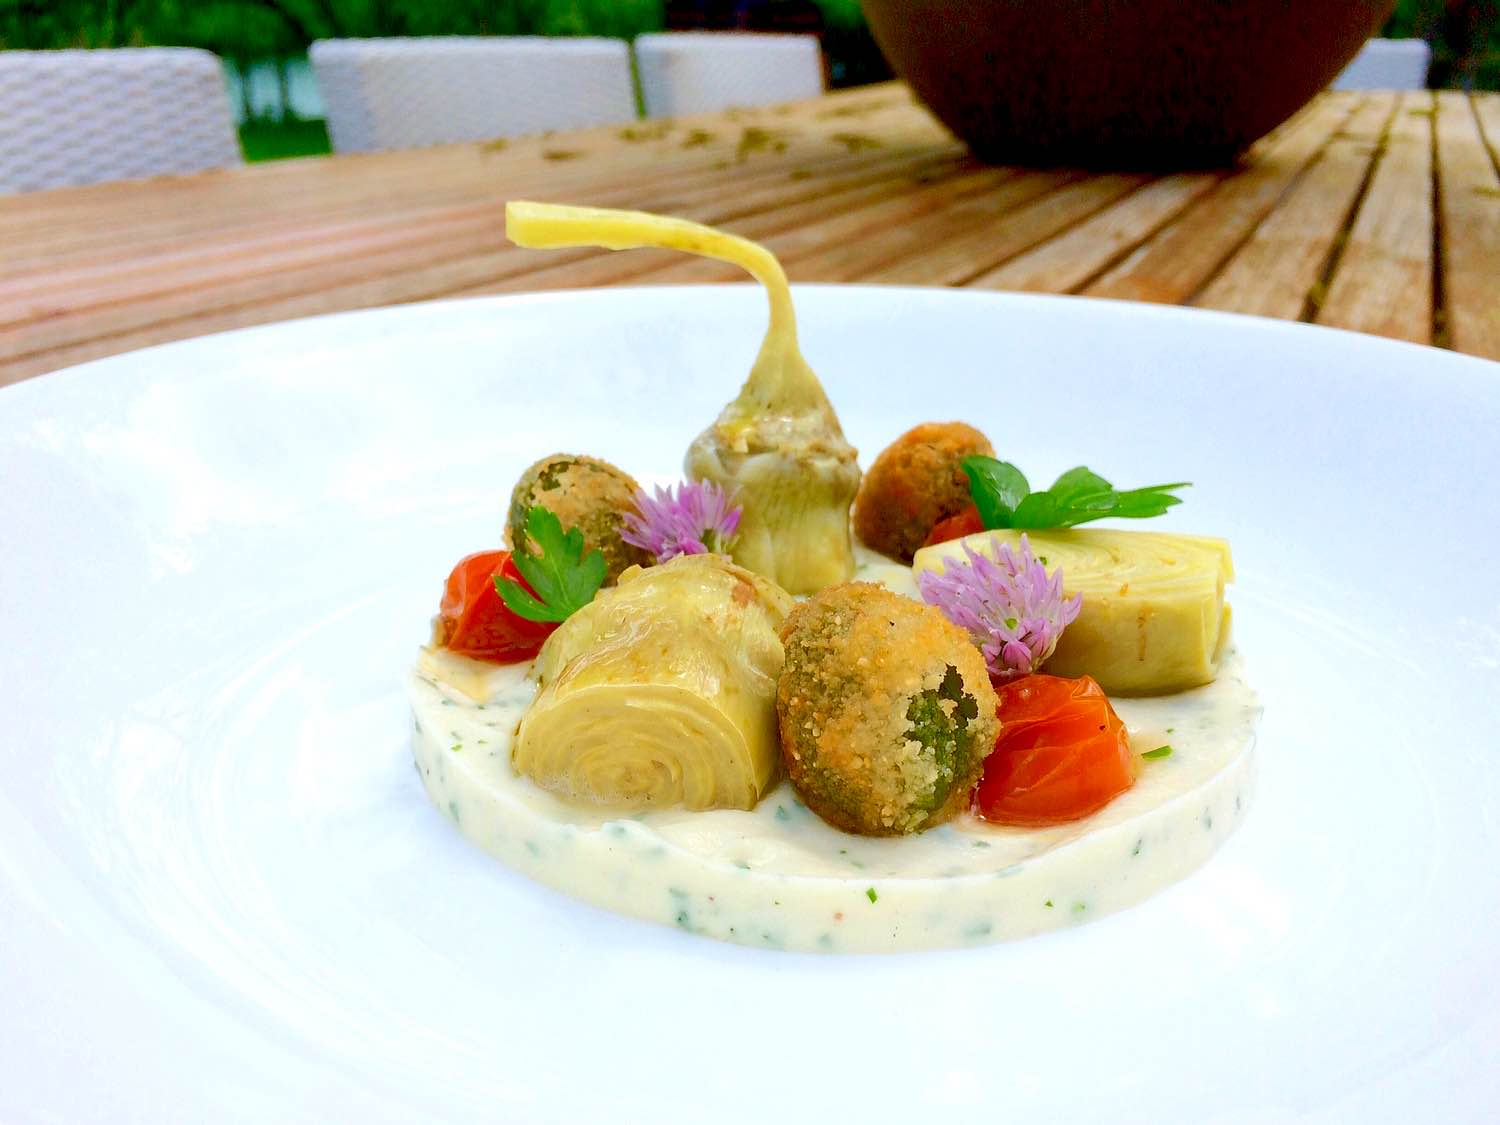 Artichokes with Fried Olives and Parsely